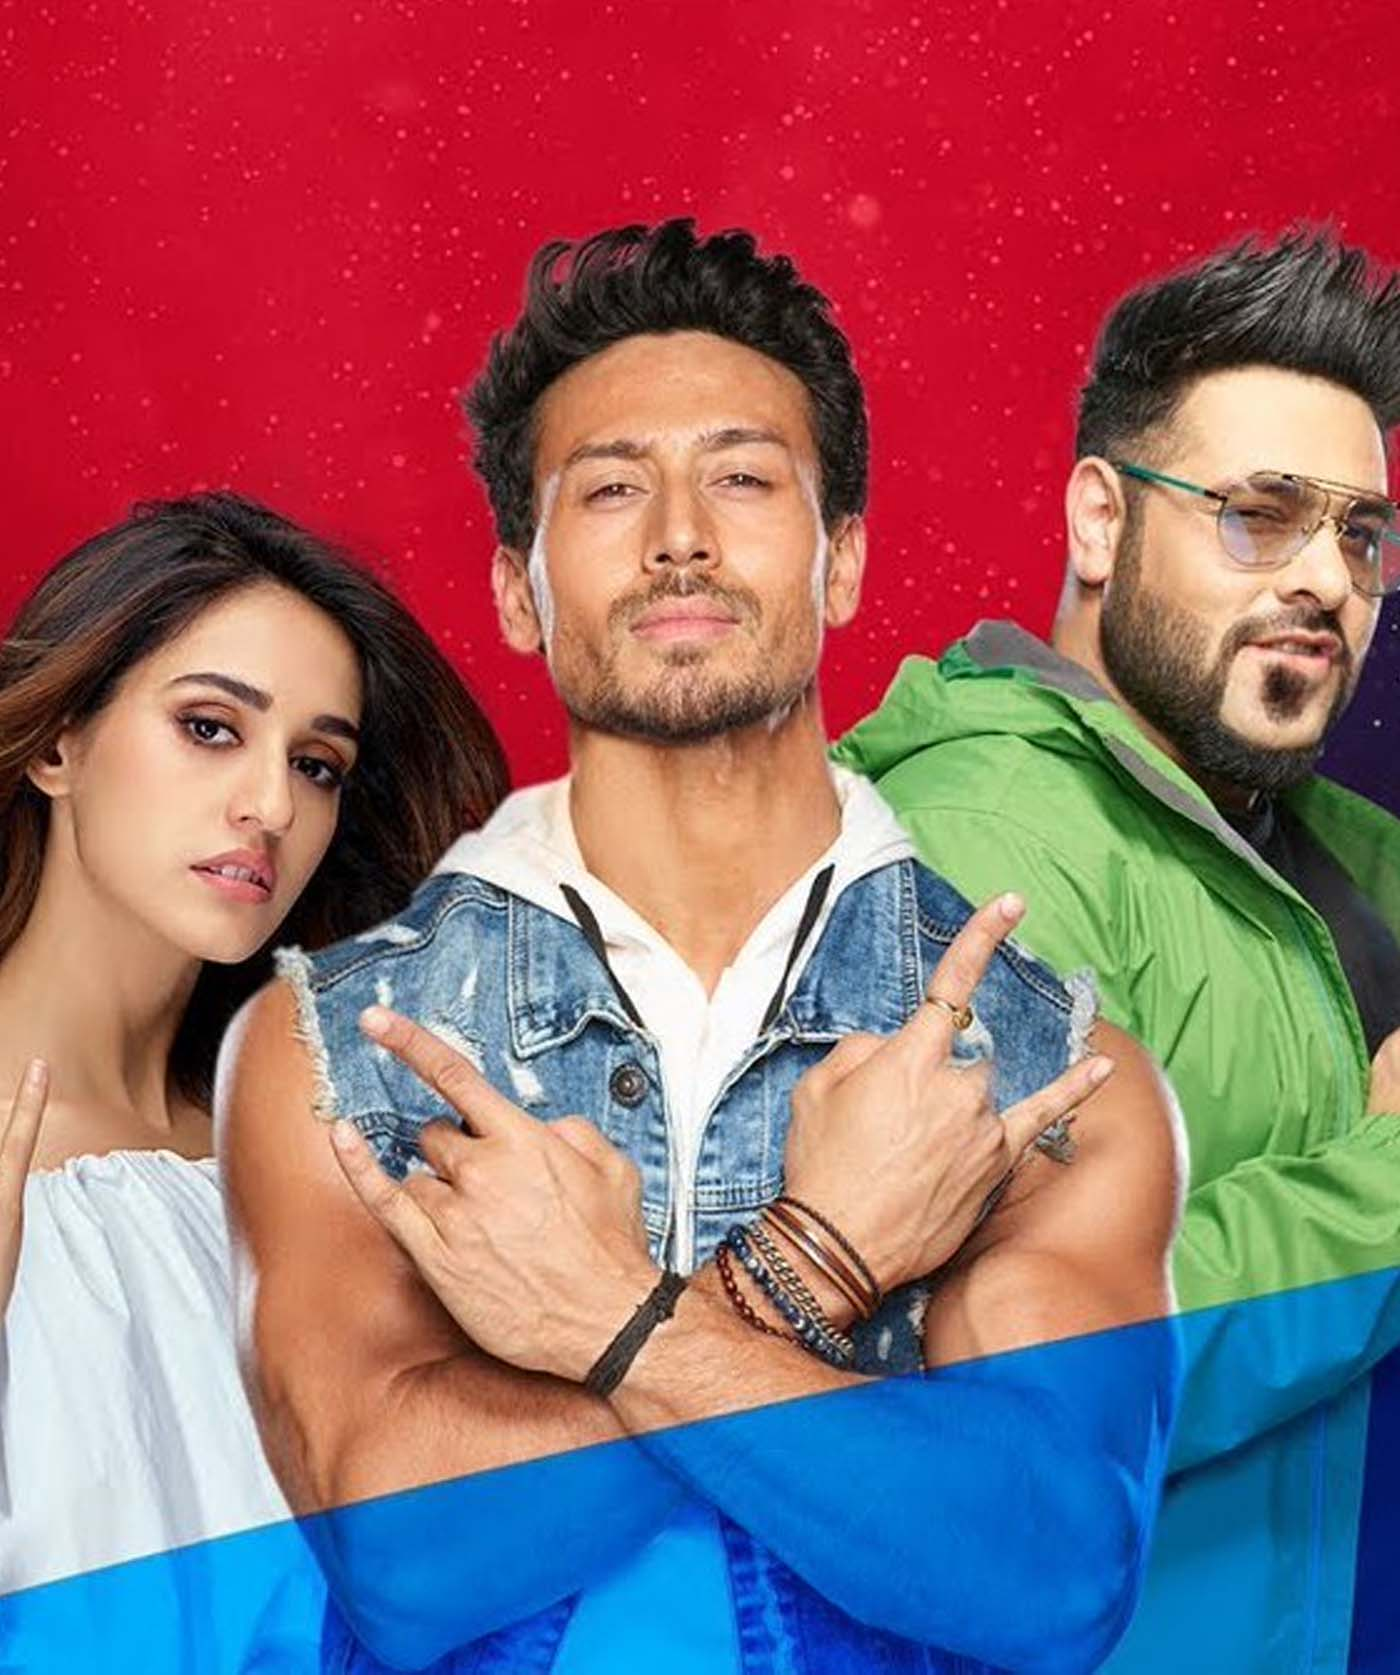 Har Ghoont Mein Swag Mp3 Song Download